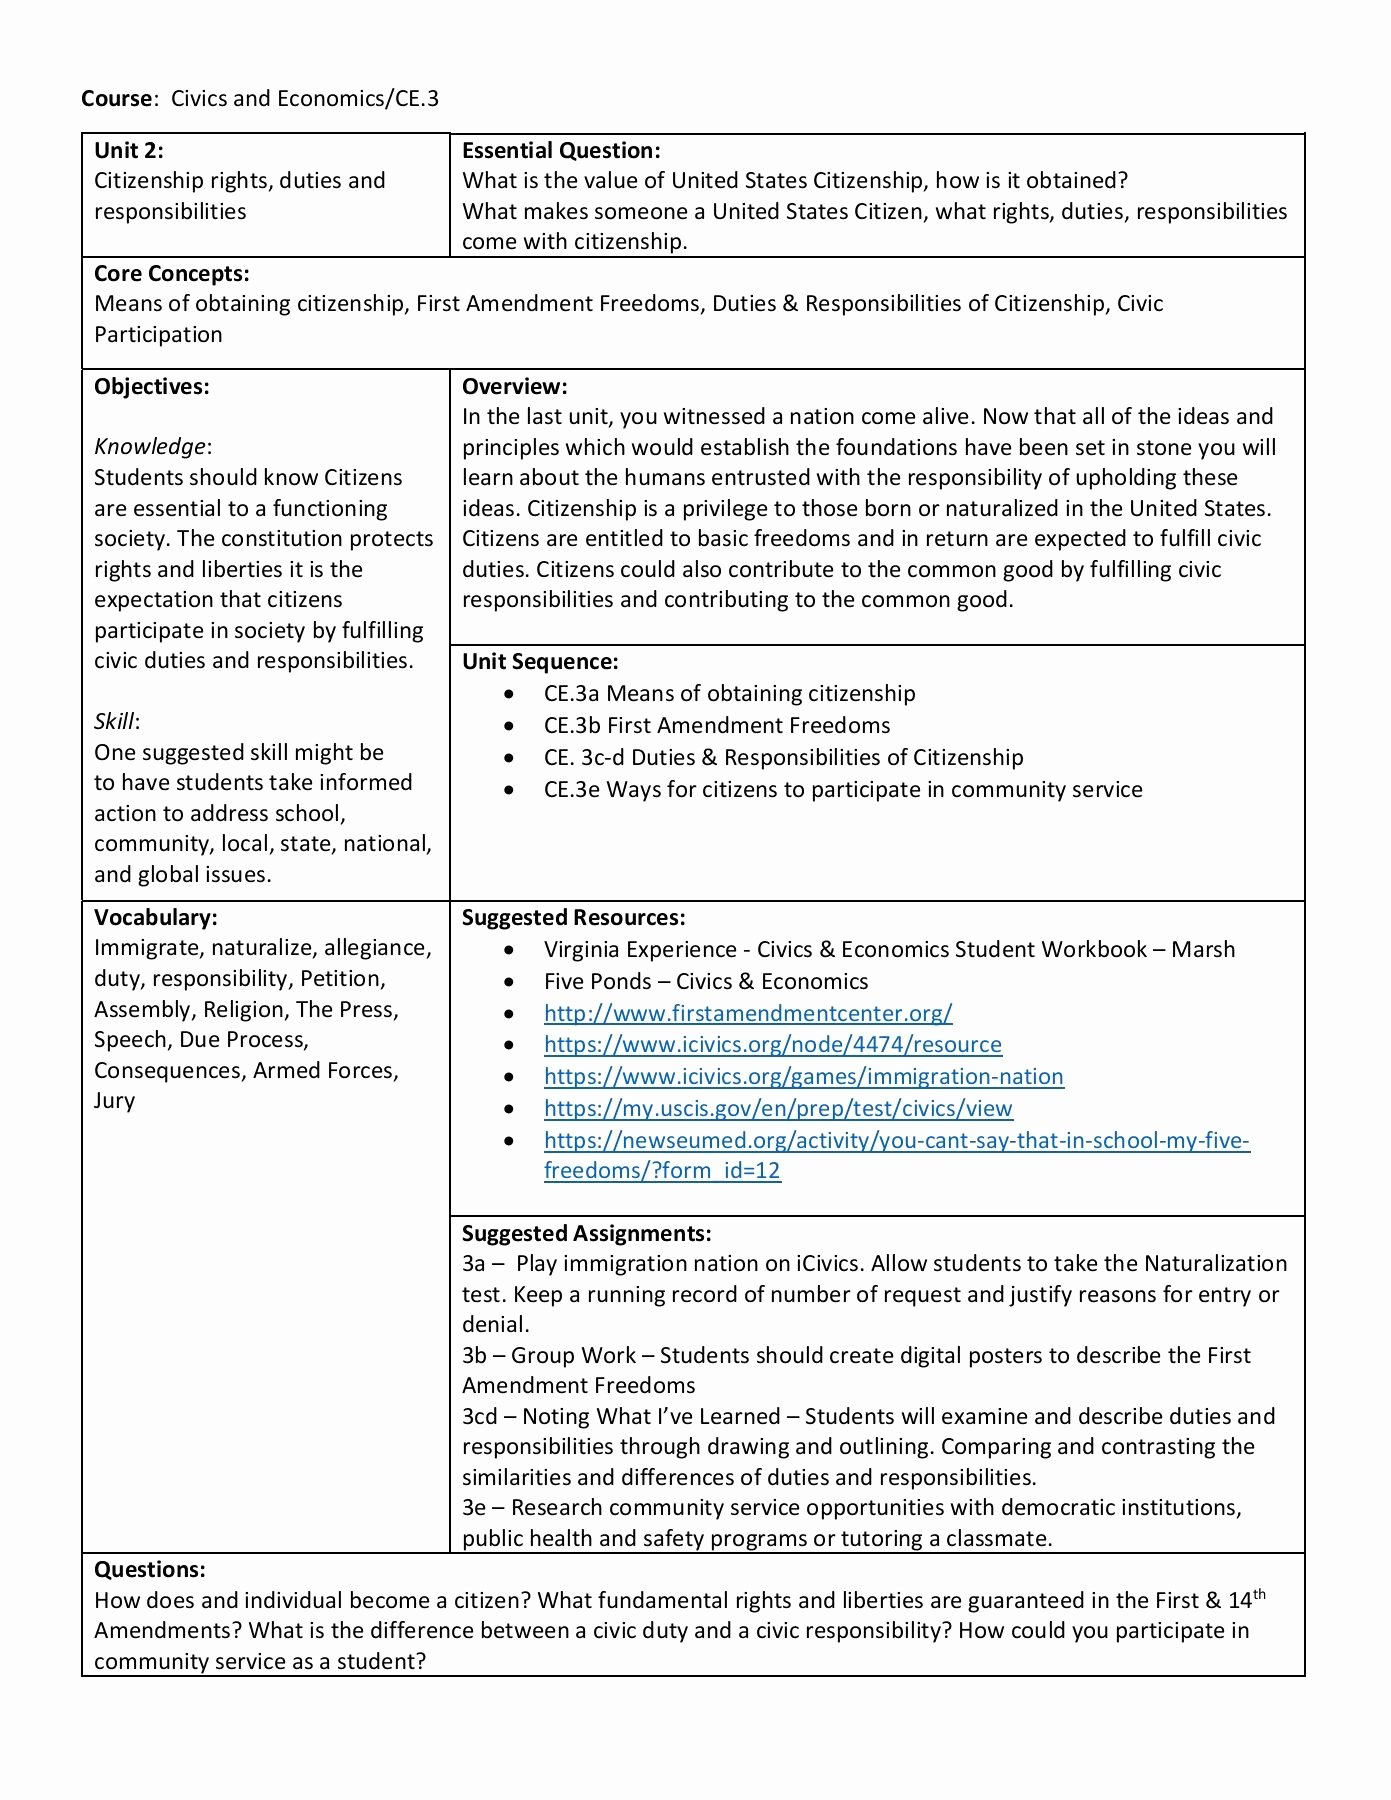 Constitutional Principles Worksheet Answers Beautiful Constitutional Principles Worksheet Answers